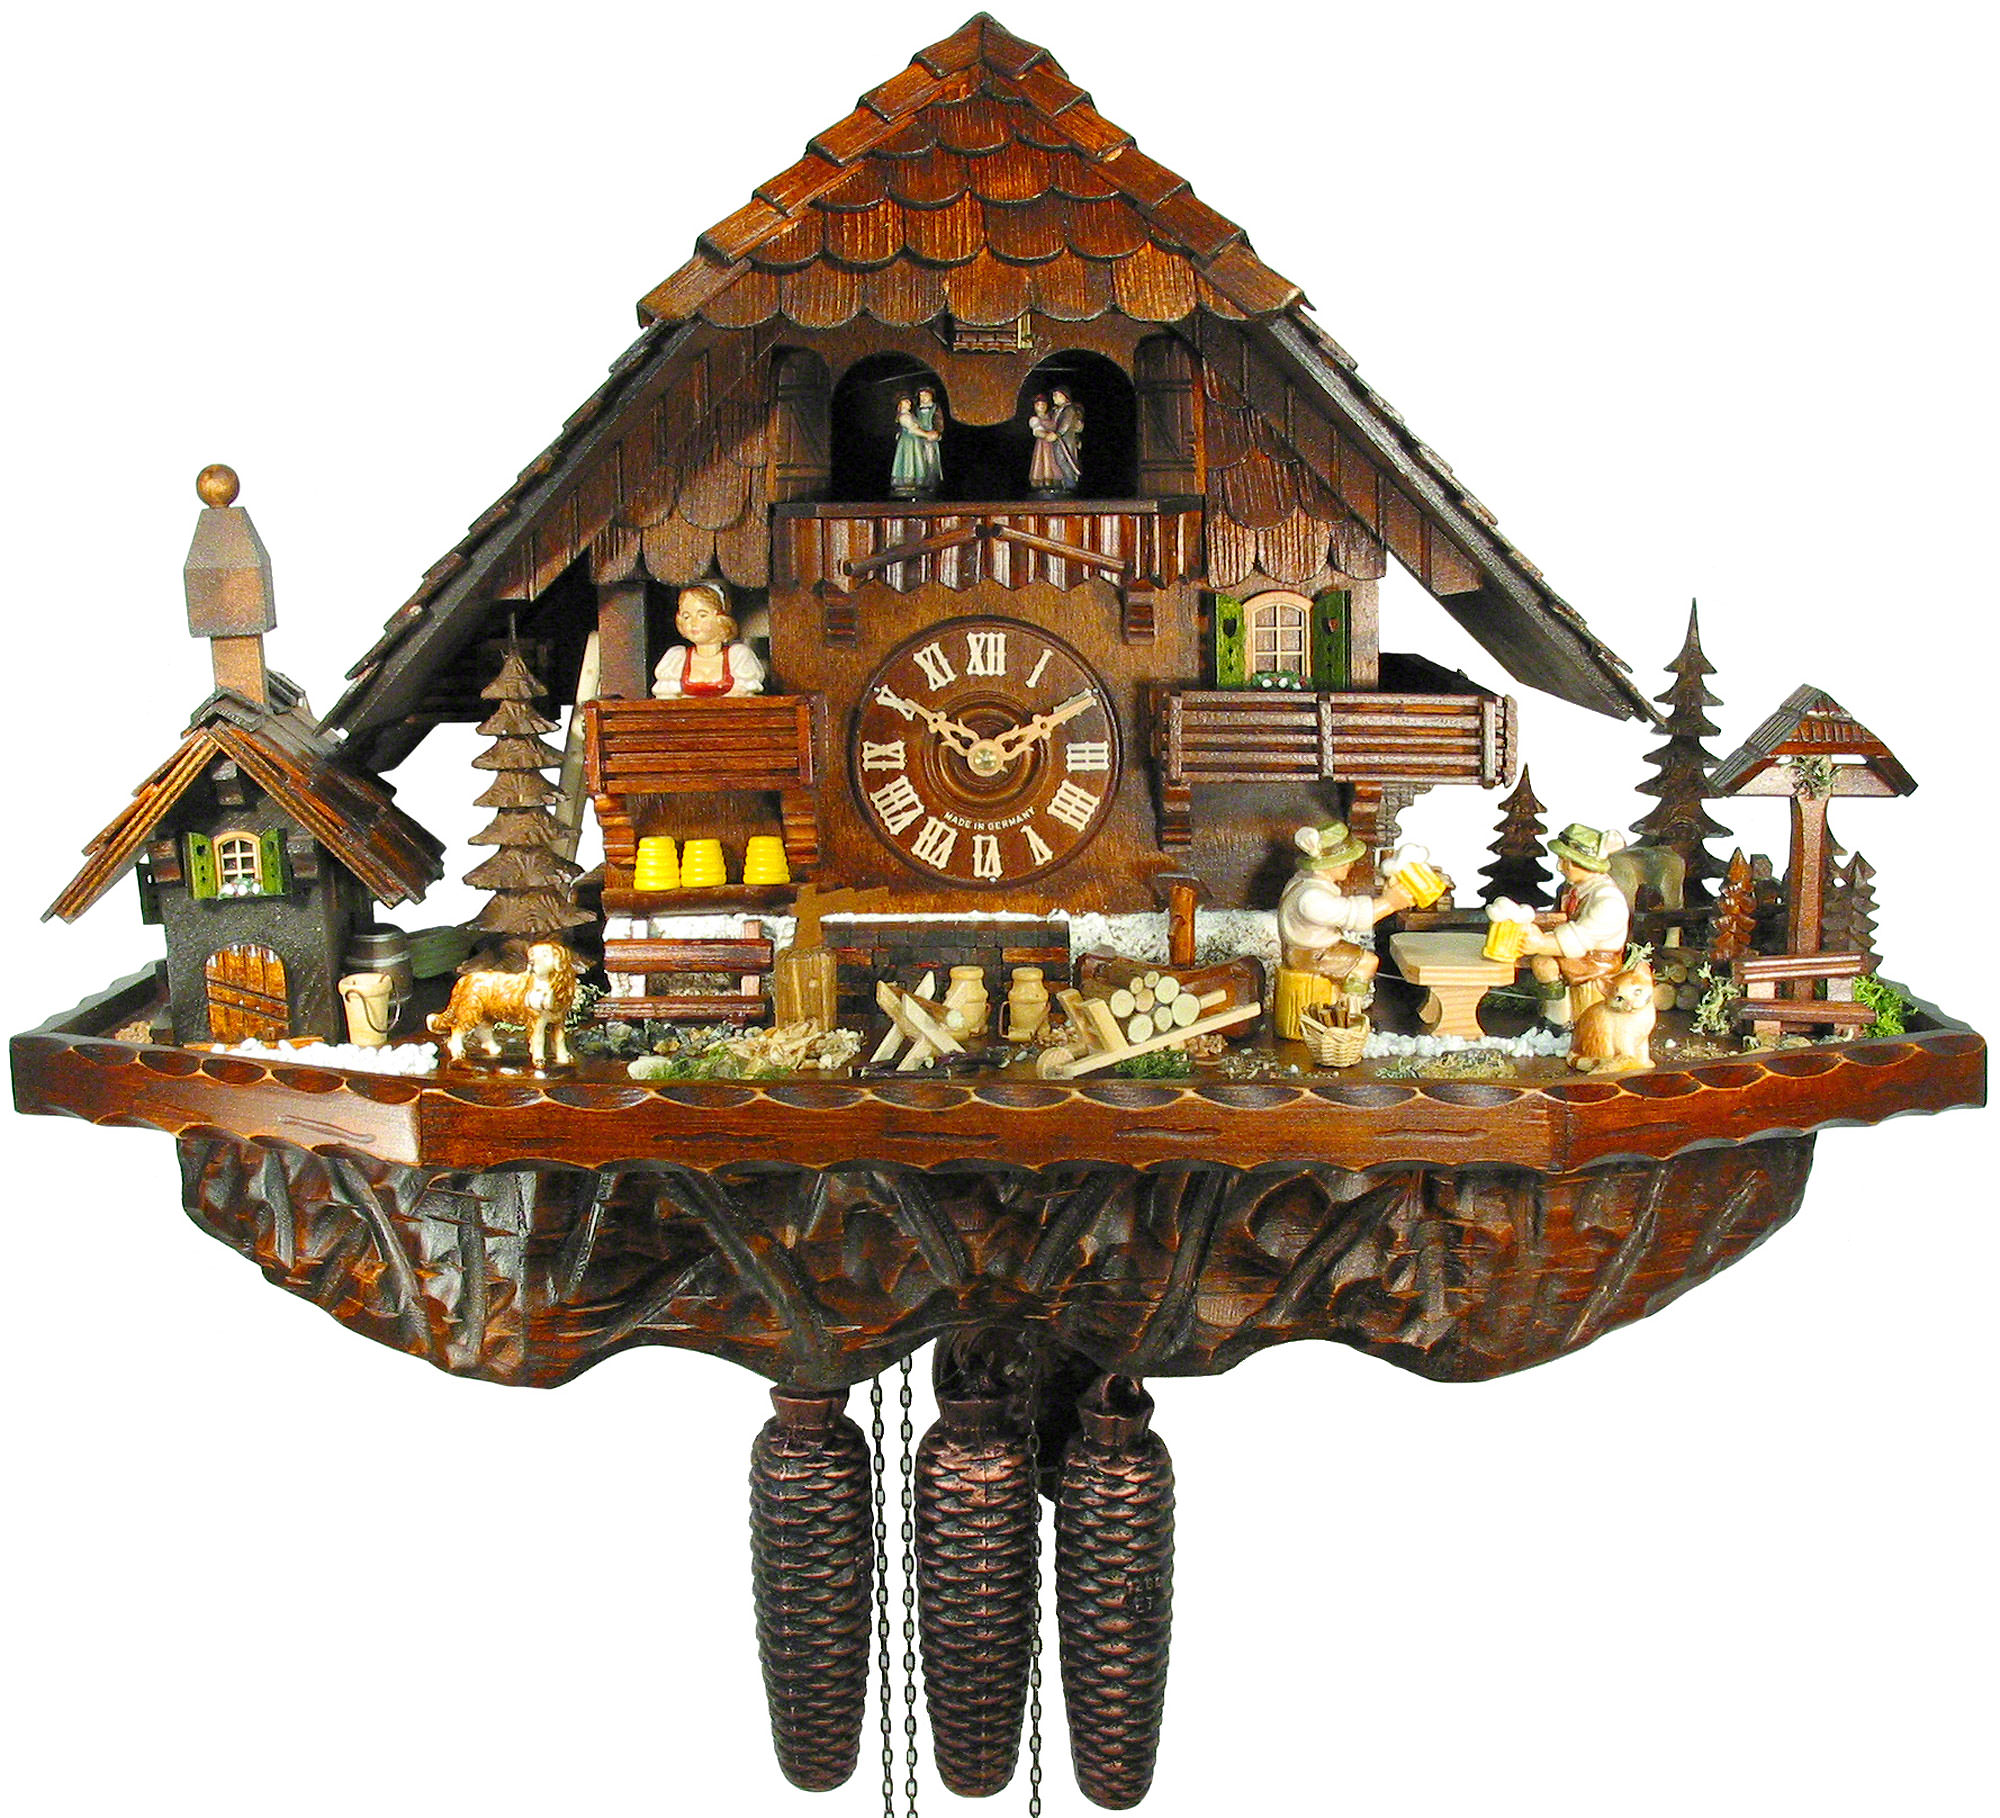 cuckoo clock 8 day movement chalet style 42cm by august schwer